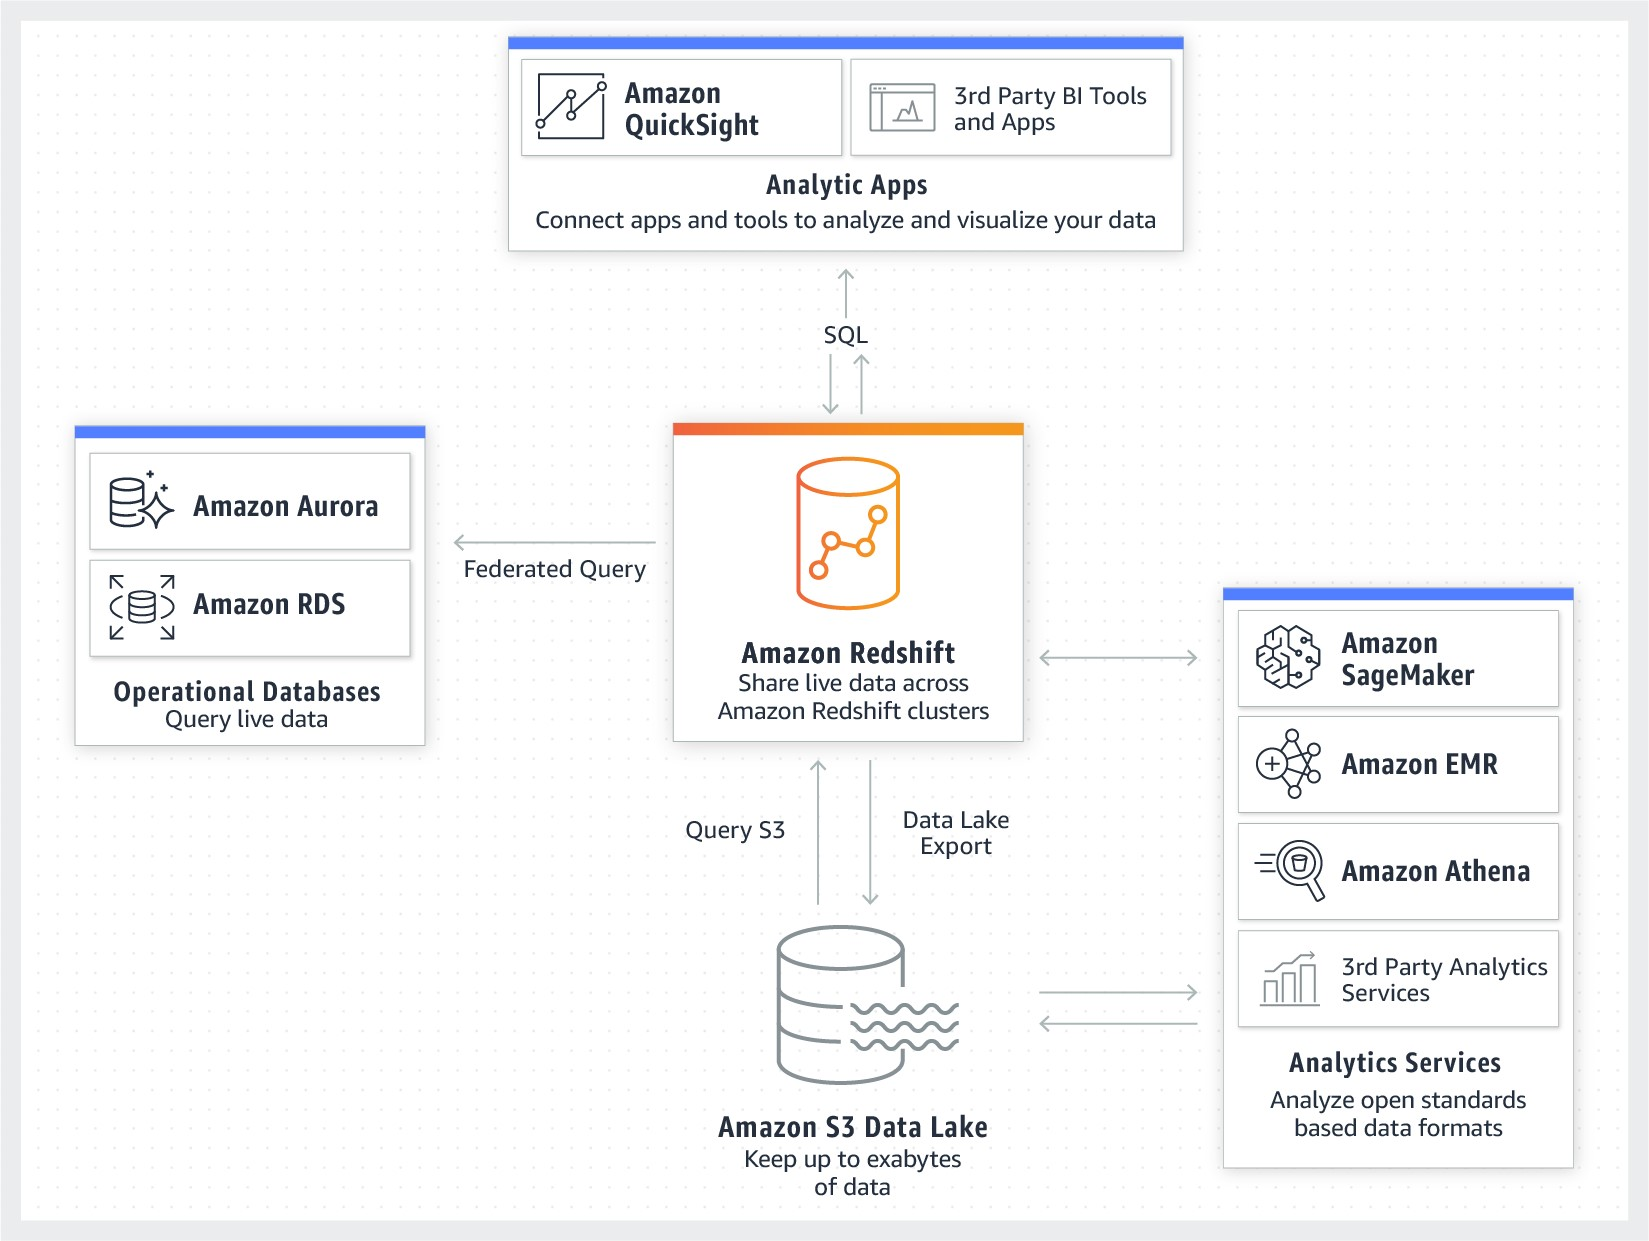 The following image shows how Amazon Redshift integrates with the data lake and other services.